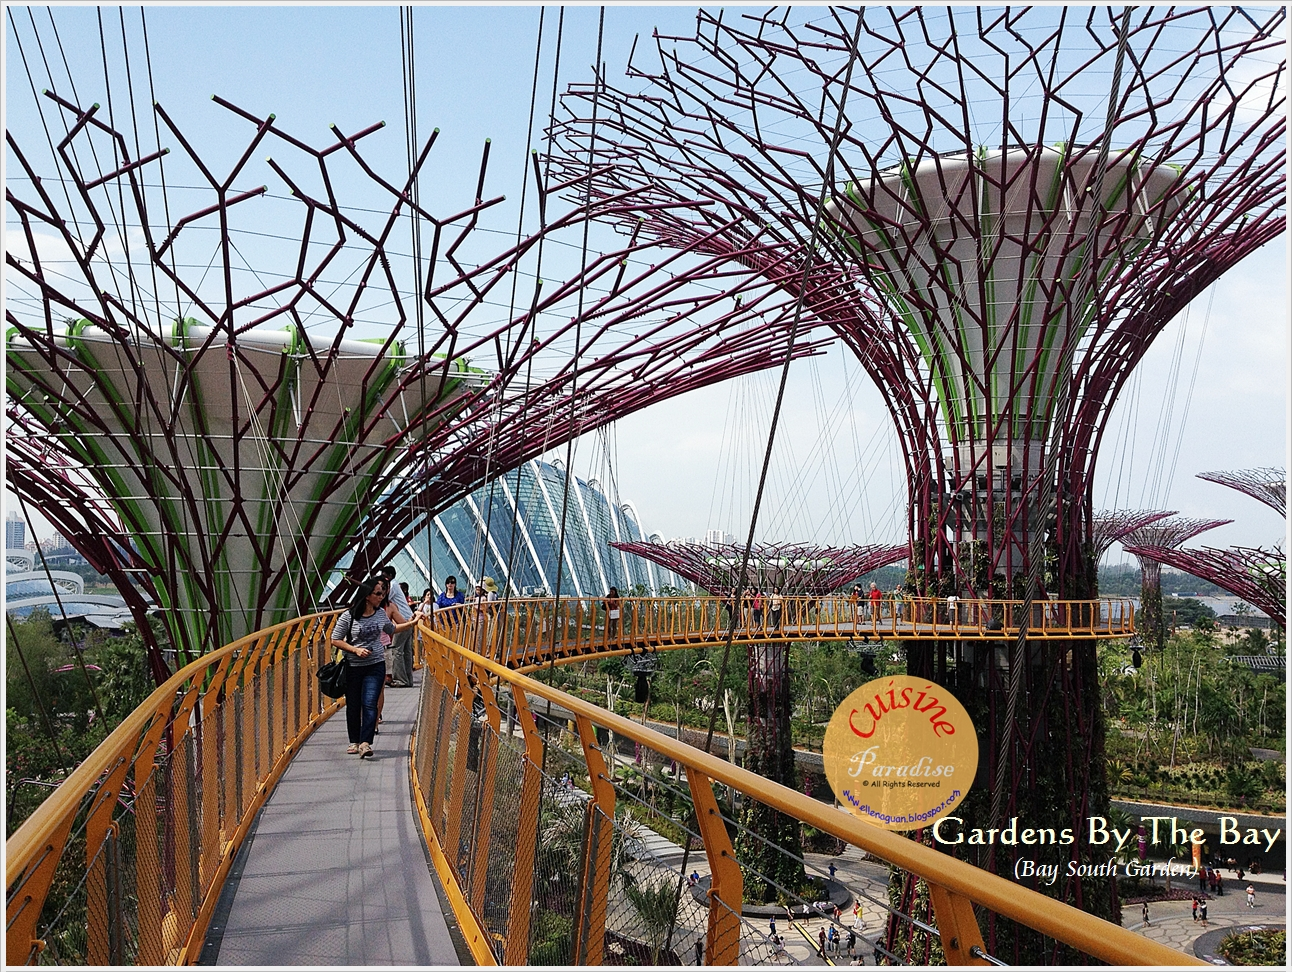 Garden By The Bay Admission cuisine paradise | eat, shop and travel: gardensthe bay @ bay